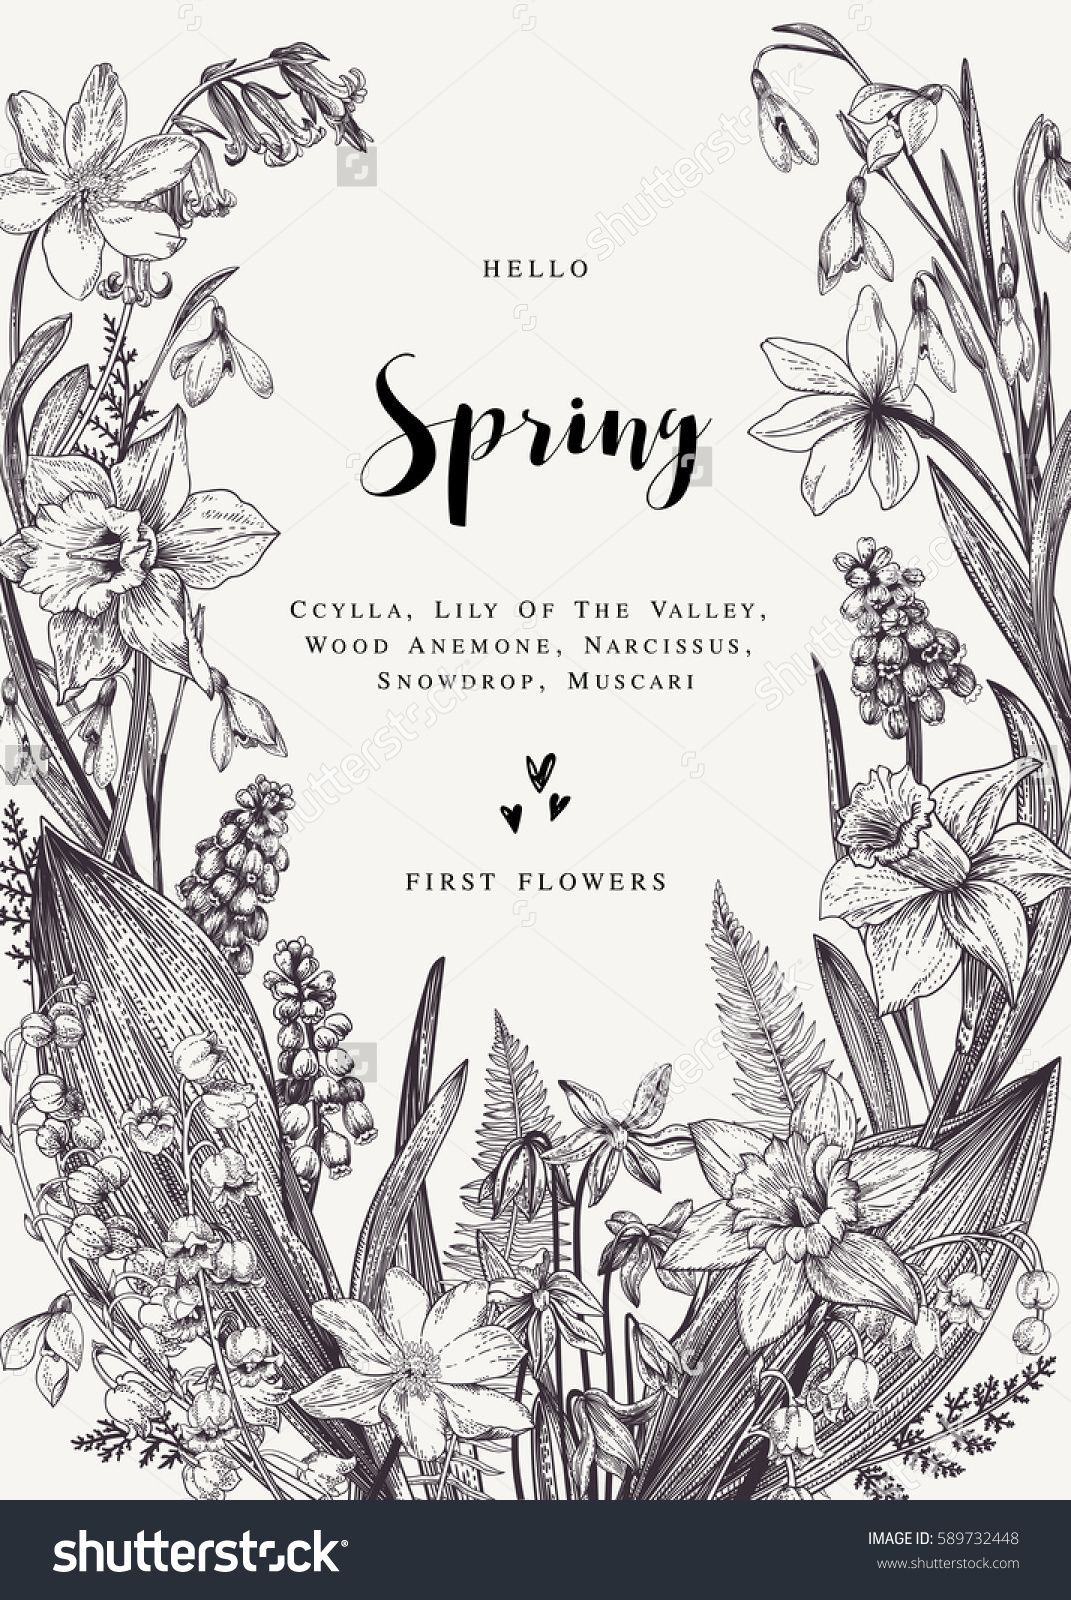 White And Black Illustration: Floral Wreath With Spring Flowers. Vector Vintage